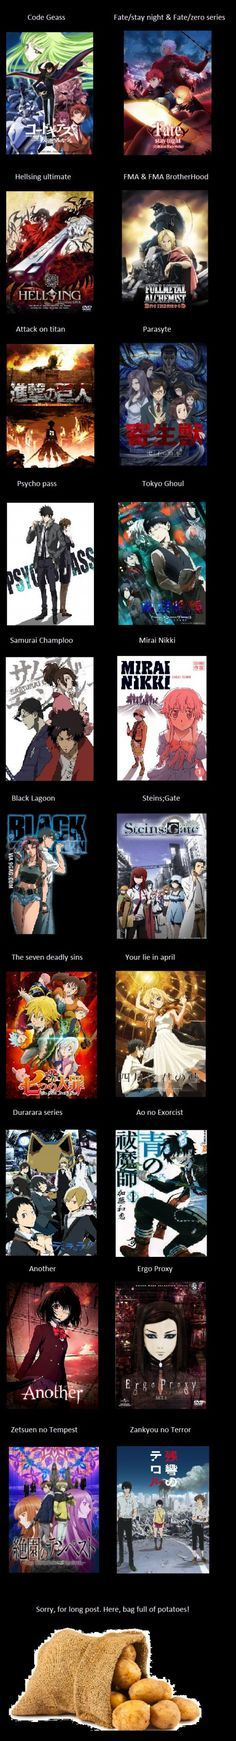 Top 20 favorite (personal opinion) anime list.